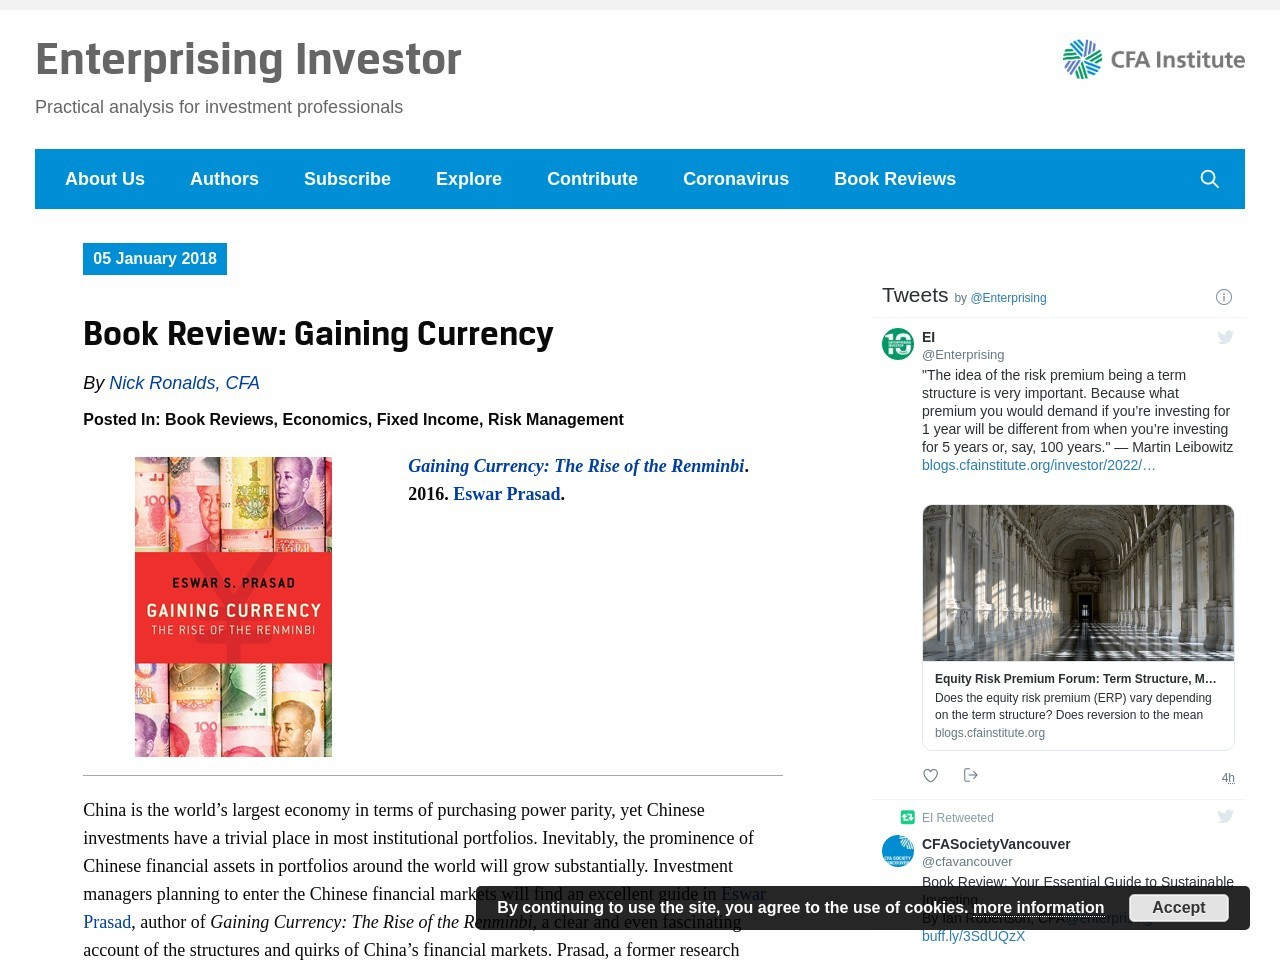 Book Review: Gaining Currency